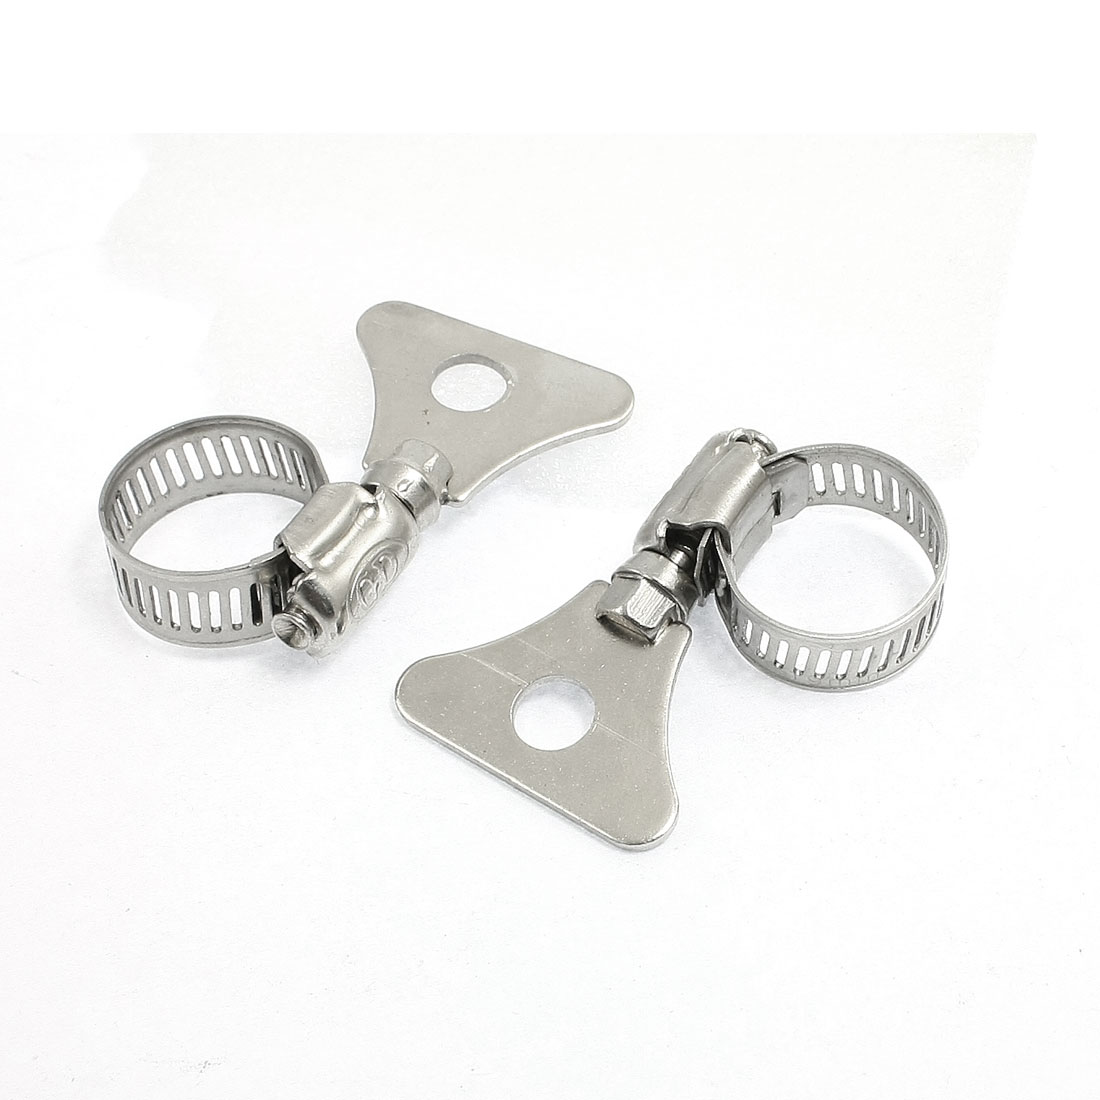 2 Pcs Stainless Steel 13-19mm Hoop Ring Adjustable Hose Clamp